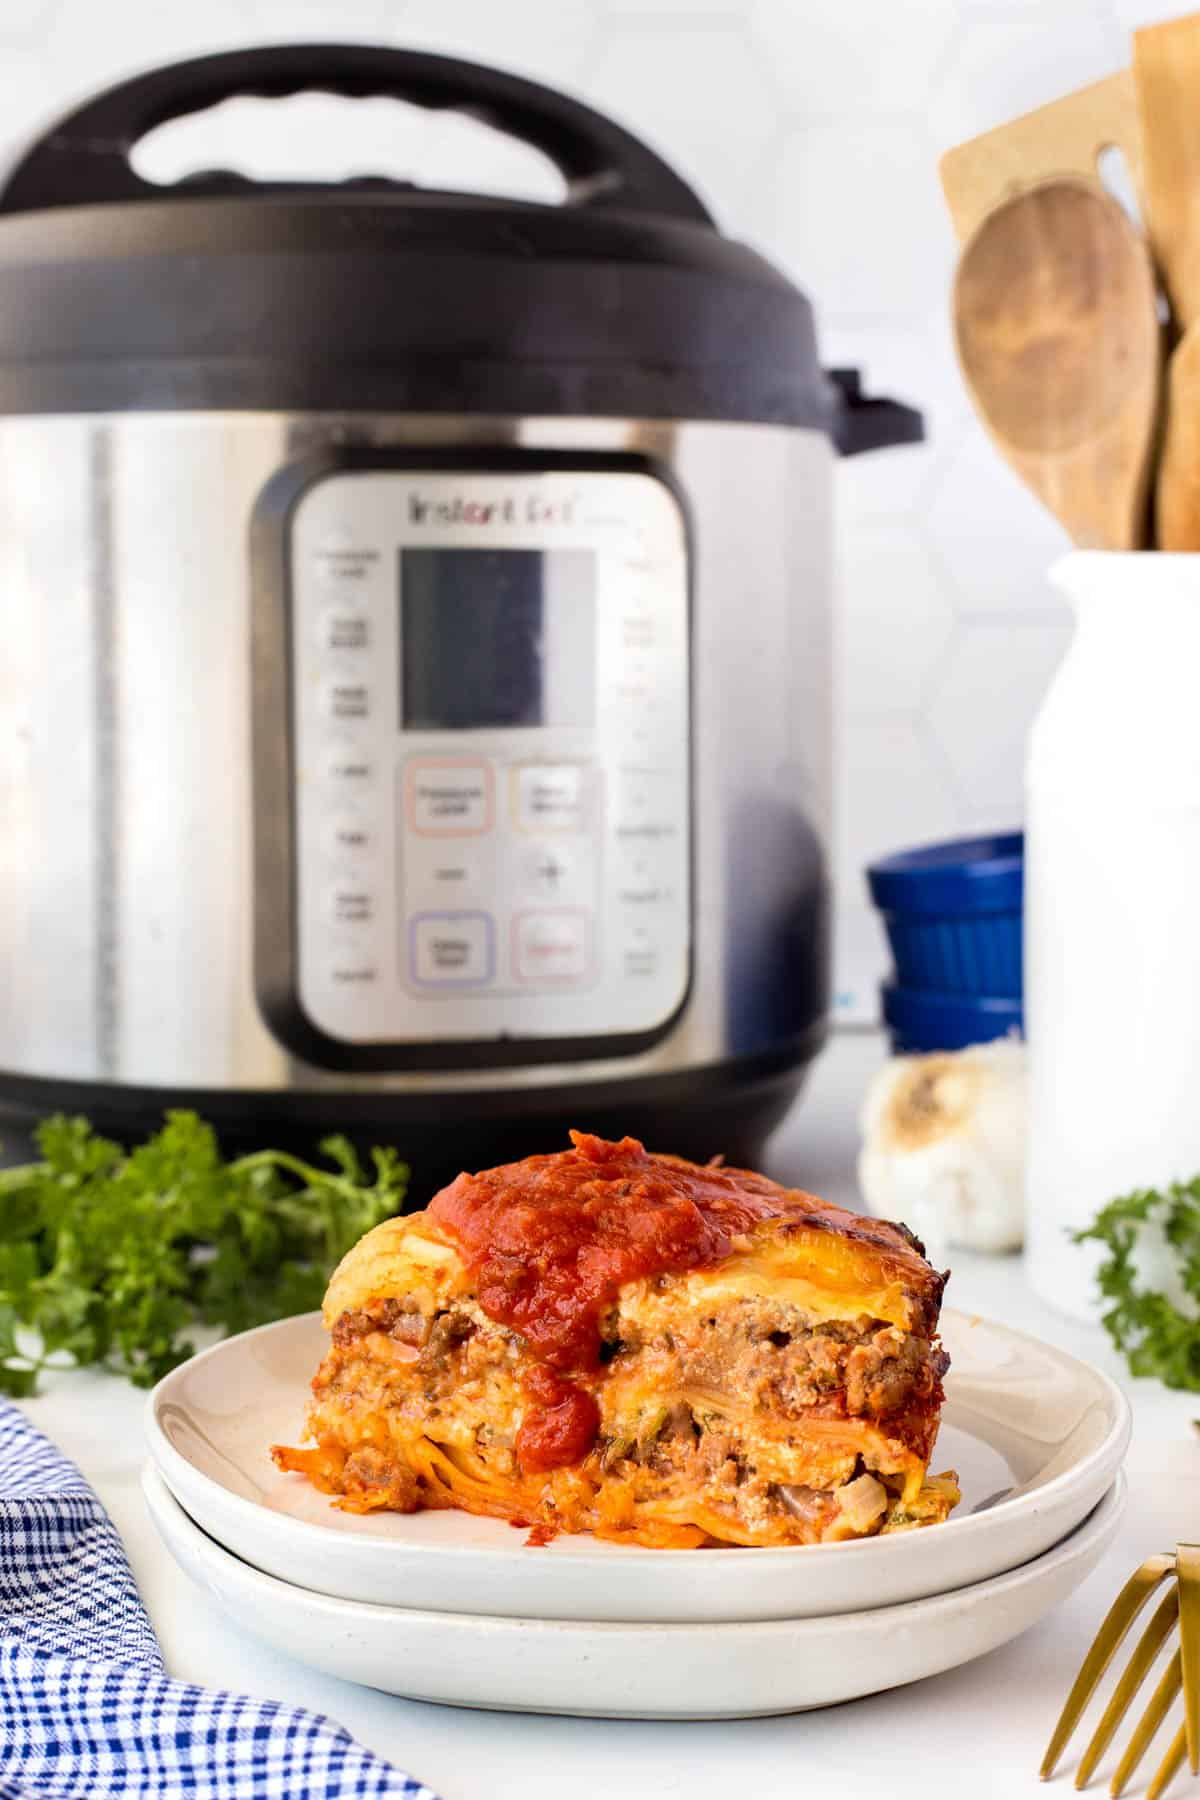 Lasagna on a plate and an Instant Pot in the background